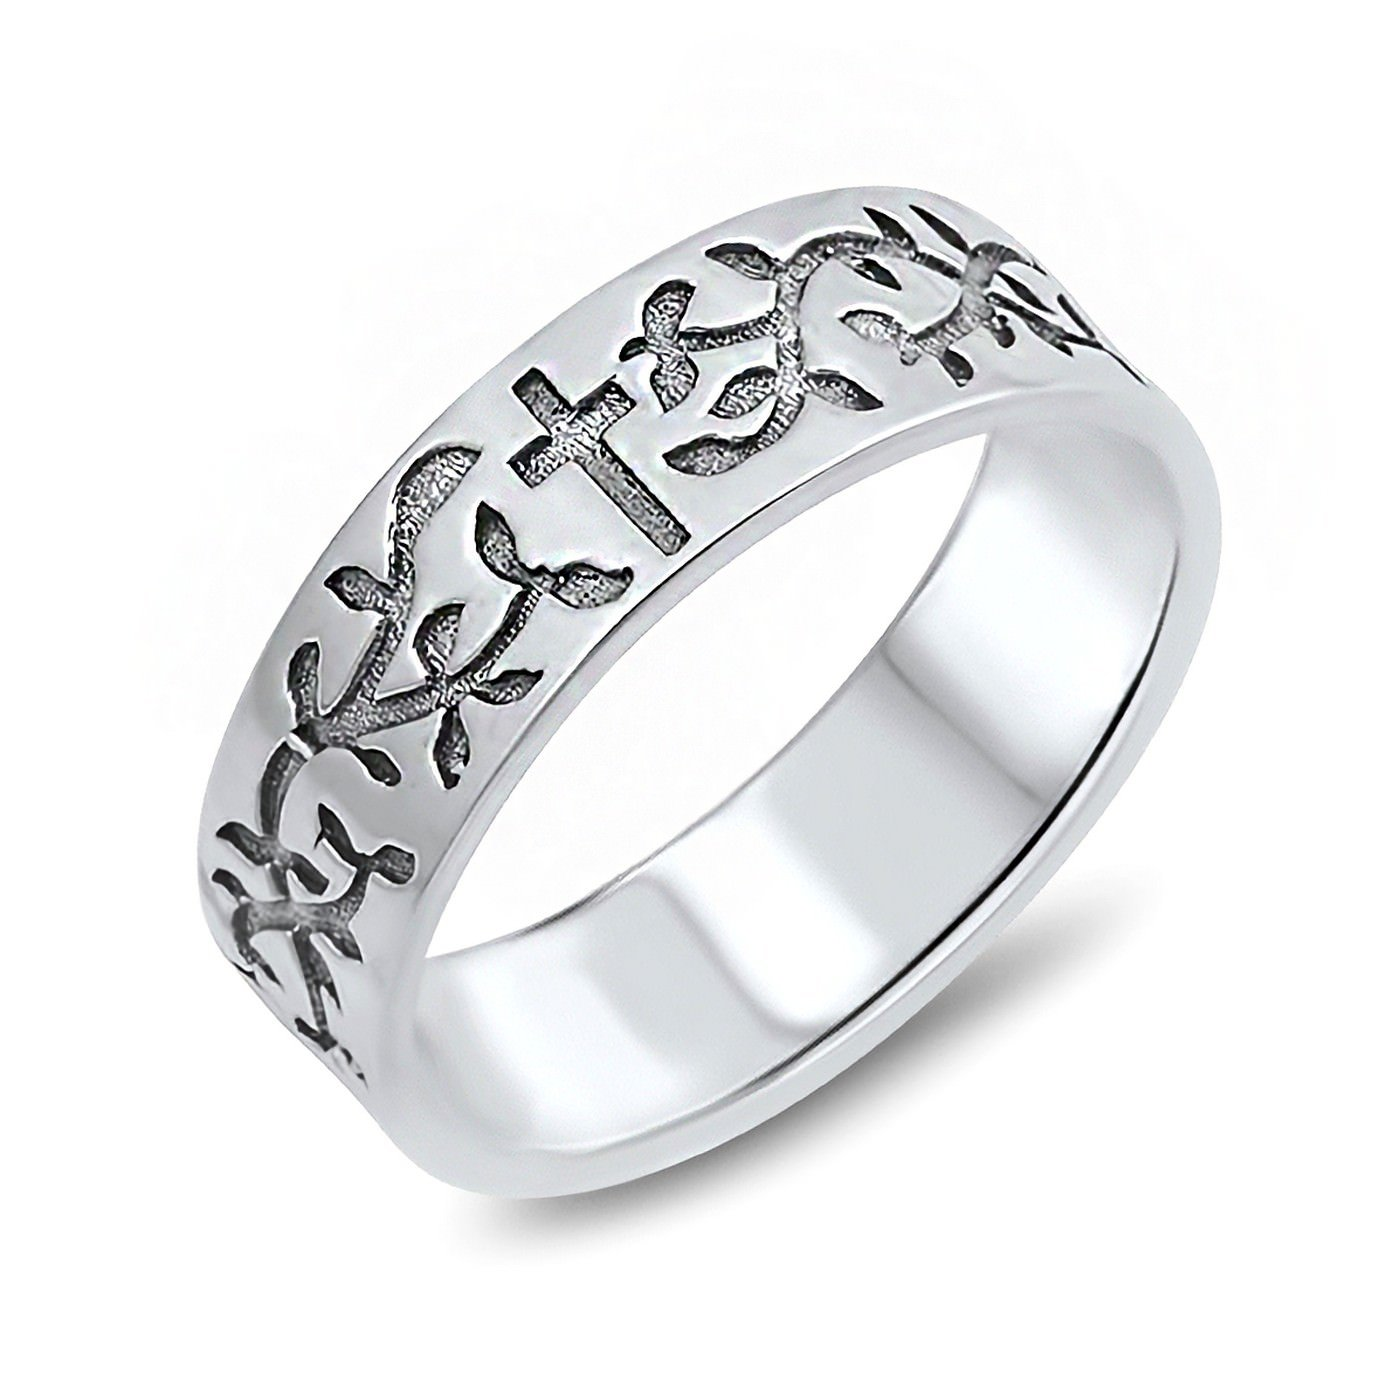 6mm Cross and Olive Vines Engraved 925 Sterling Silver Christians Womens Band Ring Size 7